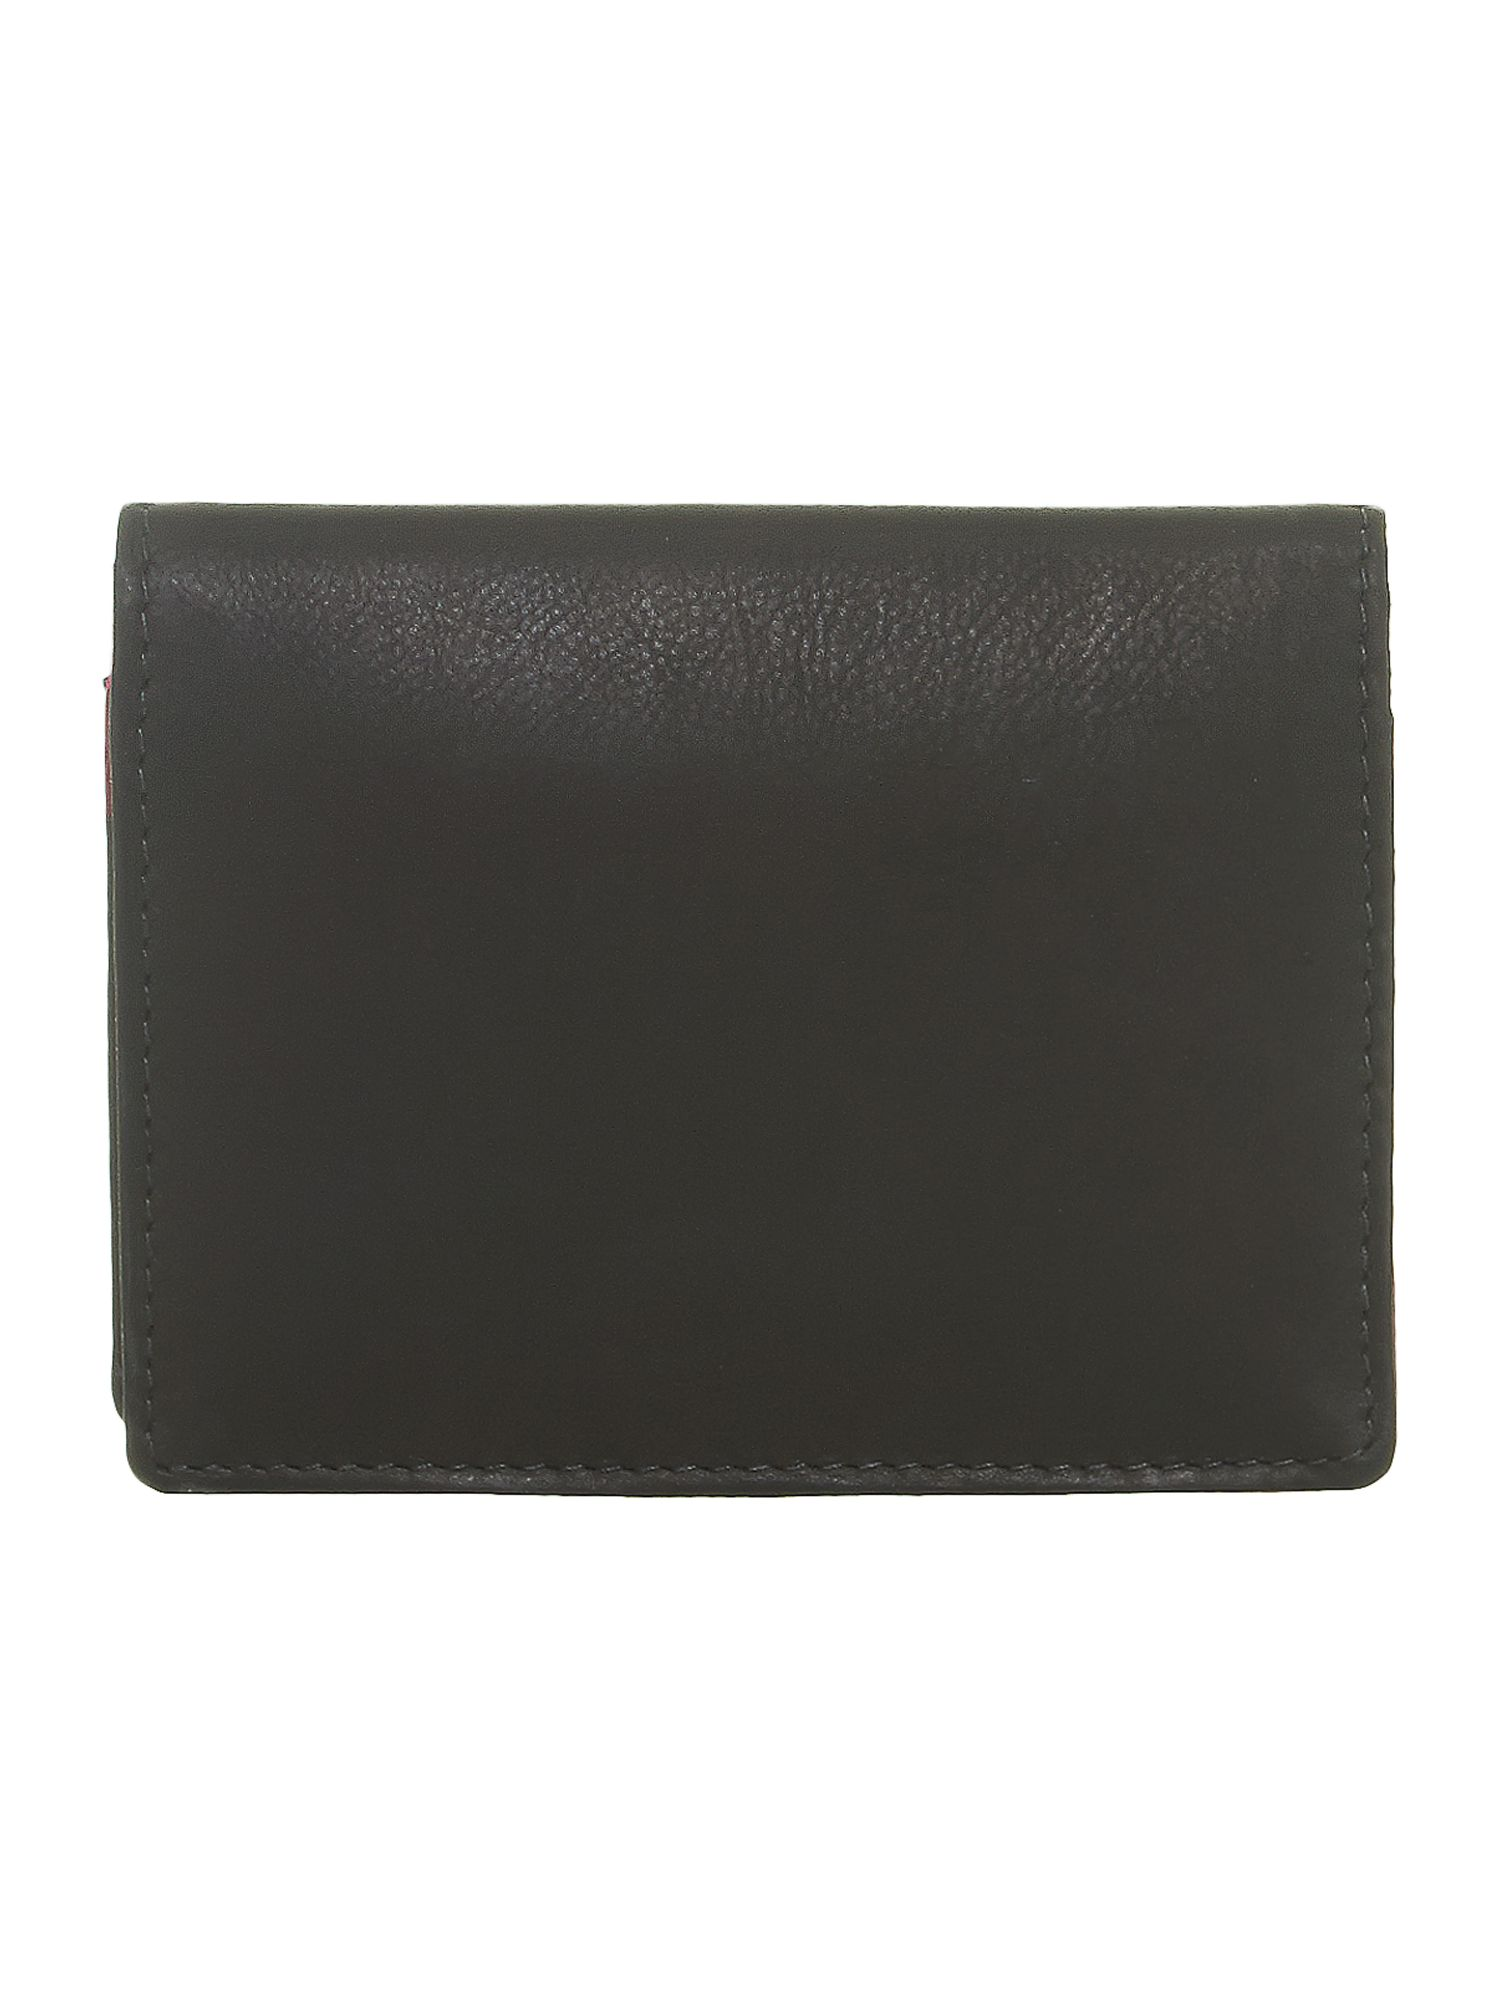 Black with purple internal leather card holder